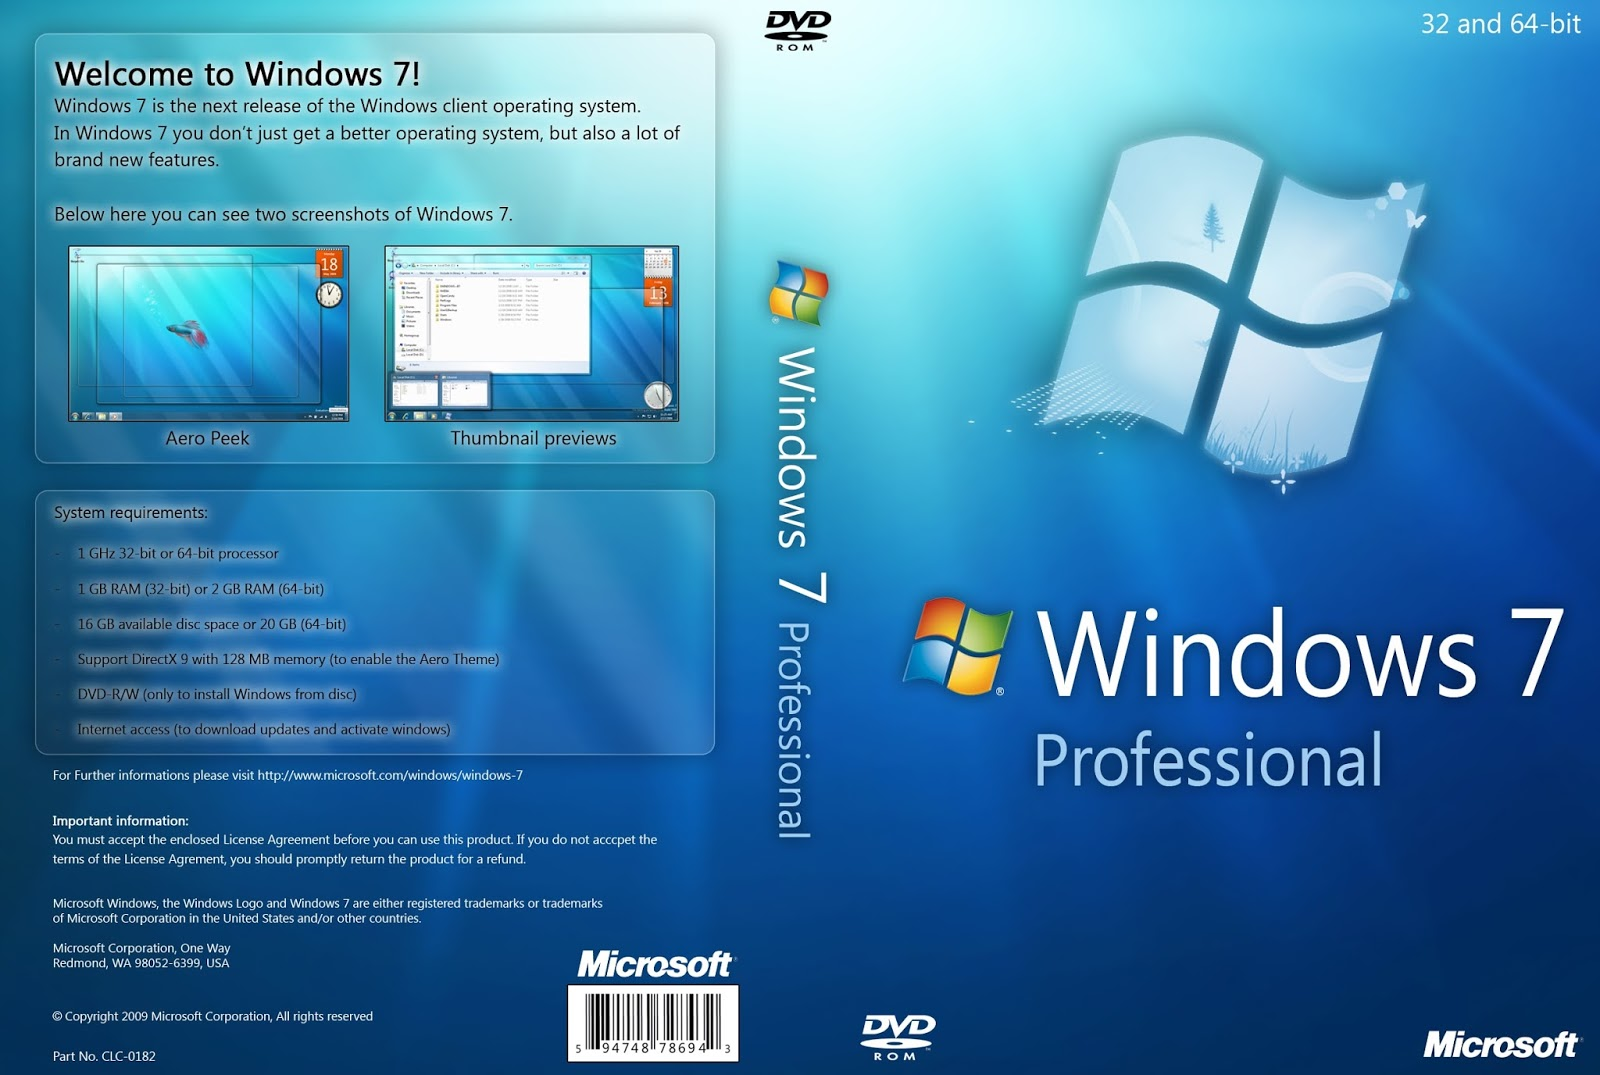 windows 7 home basic 32 bit free download full version